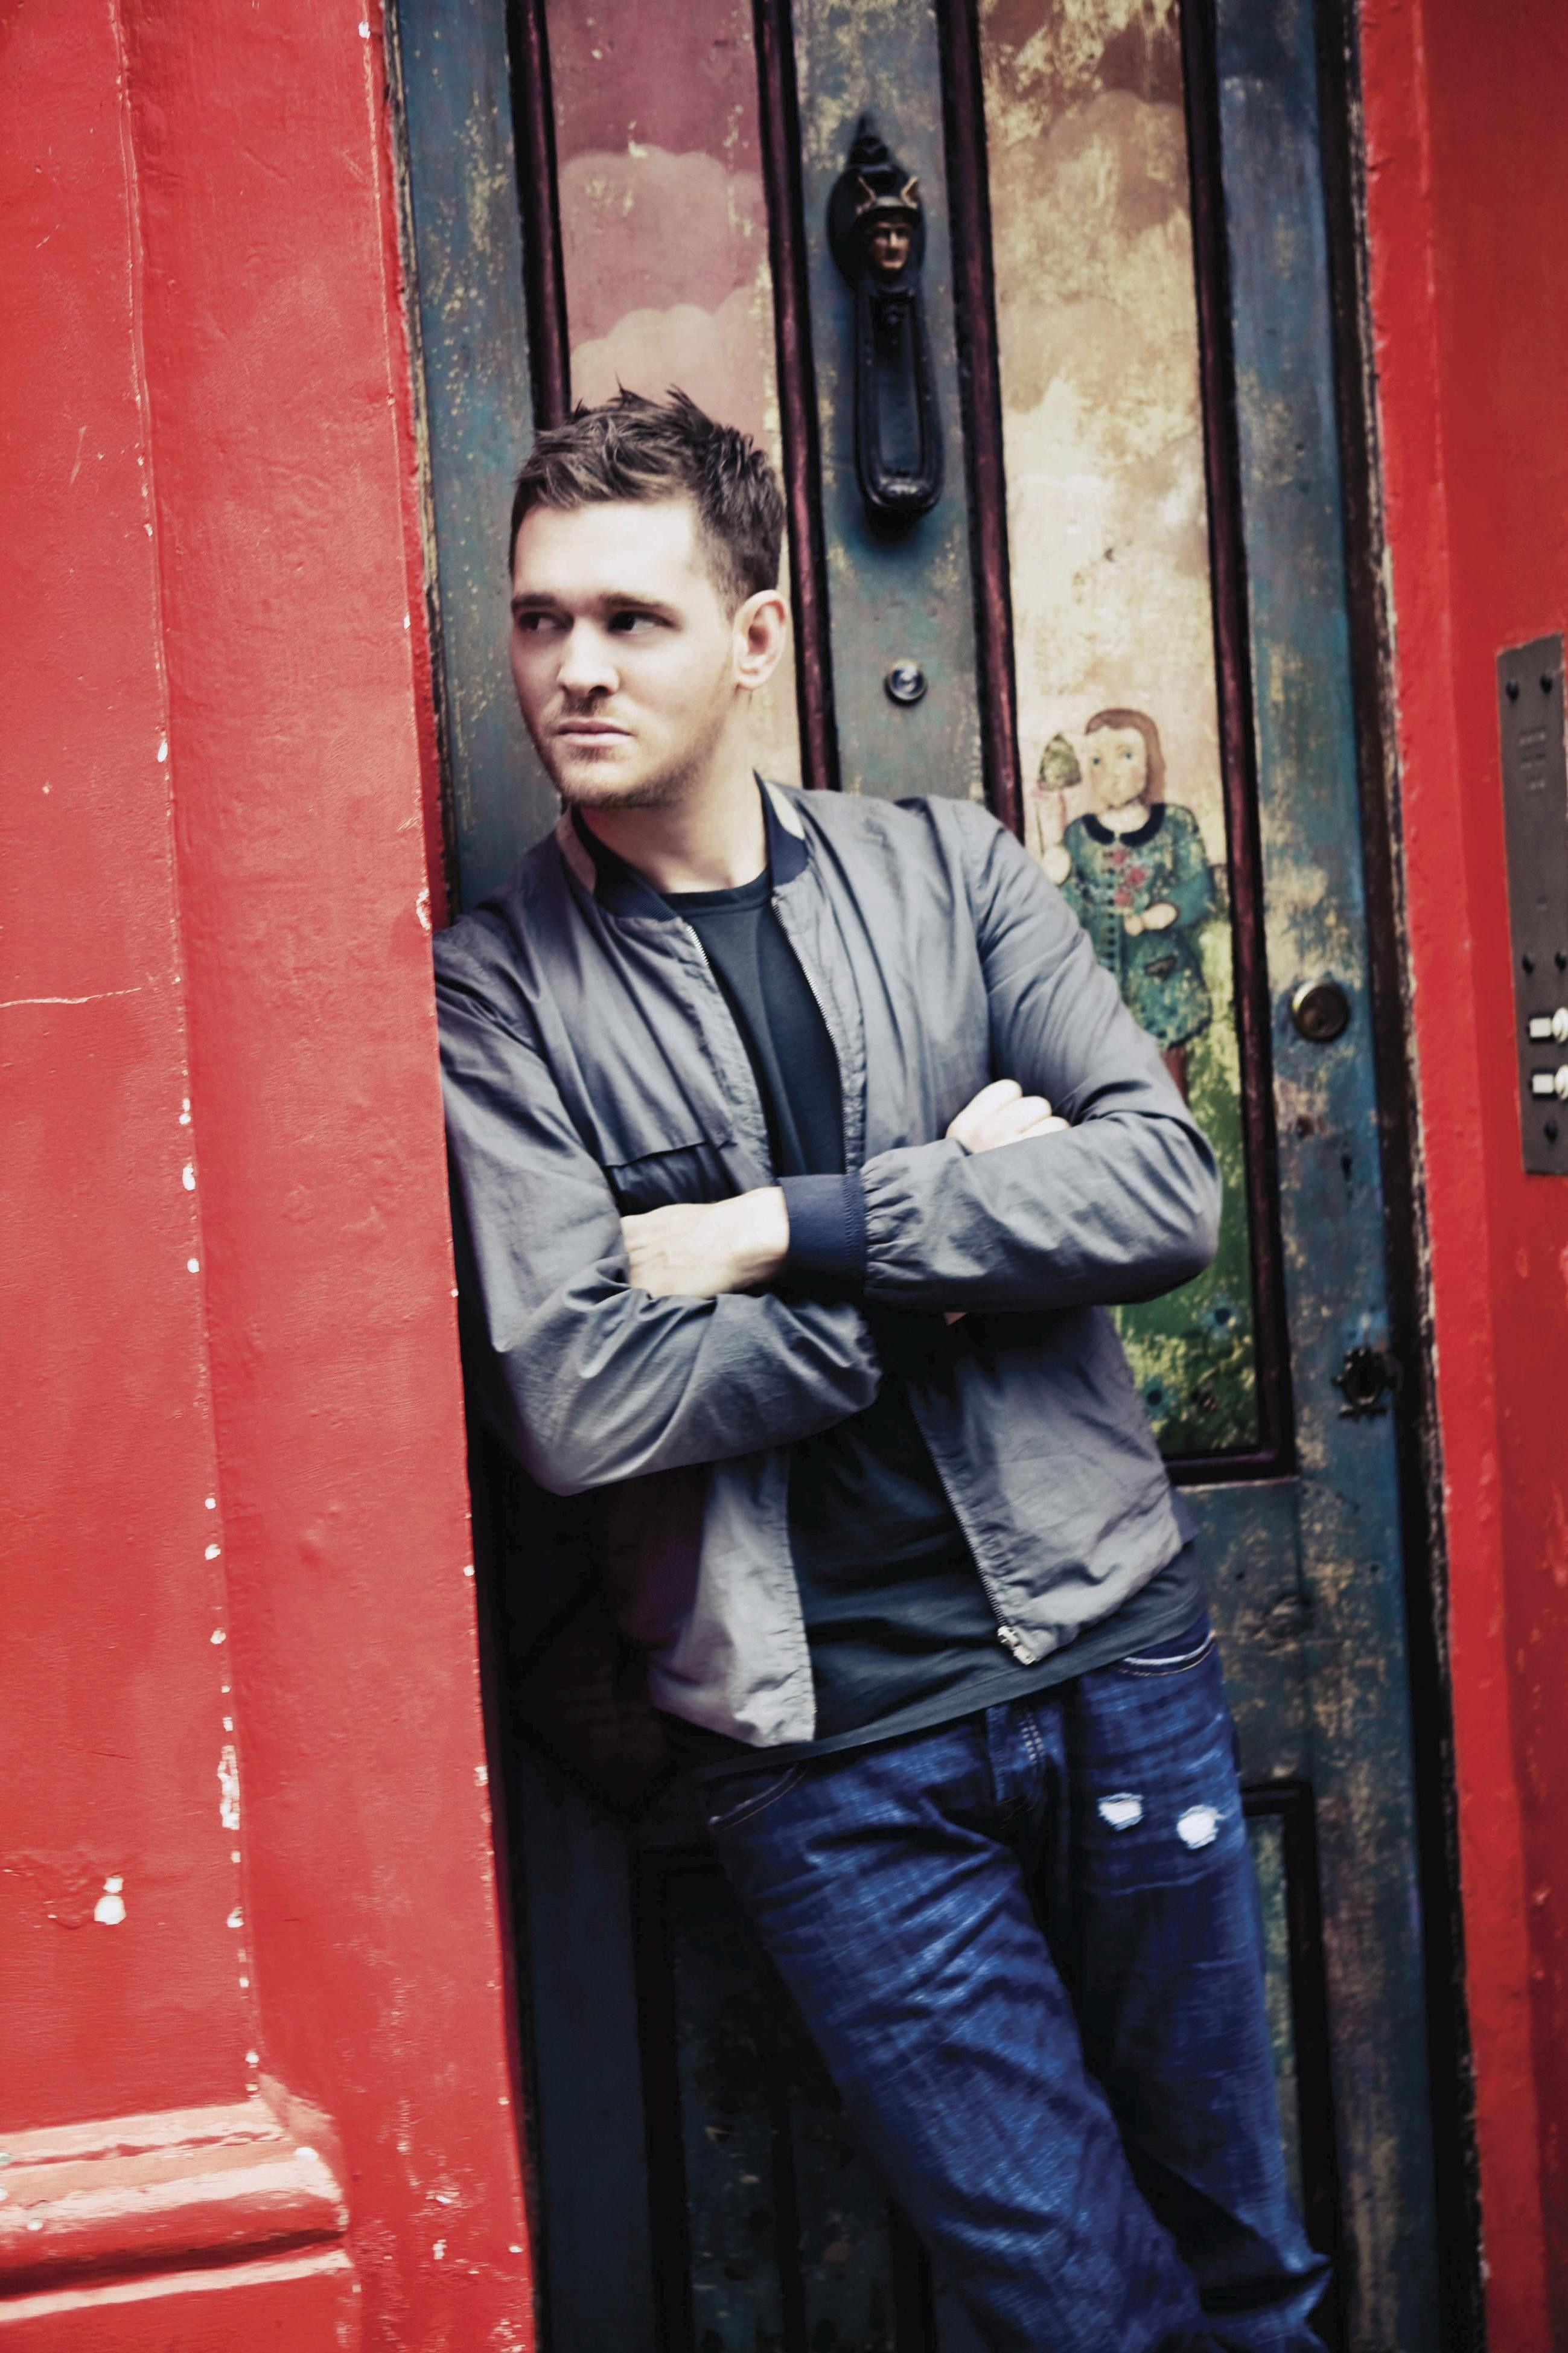 Michael Buble photo 12 of 44 pics, wallpapers